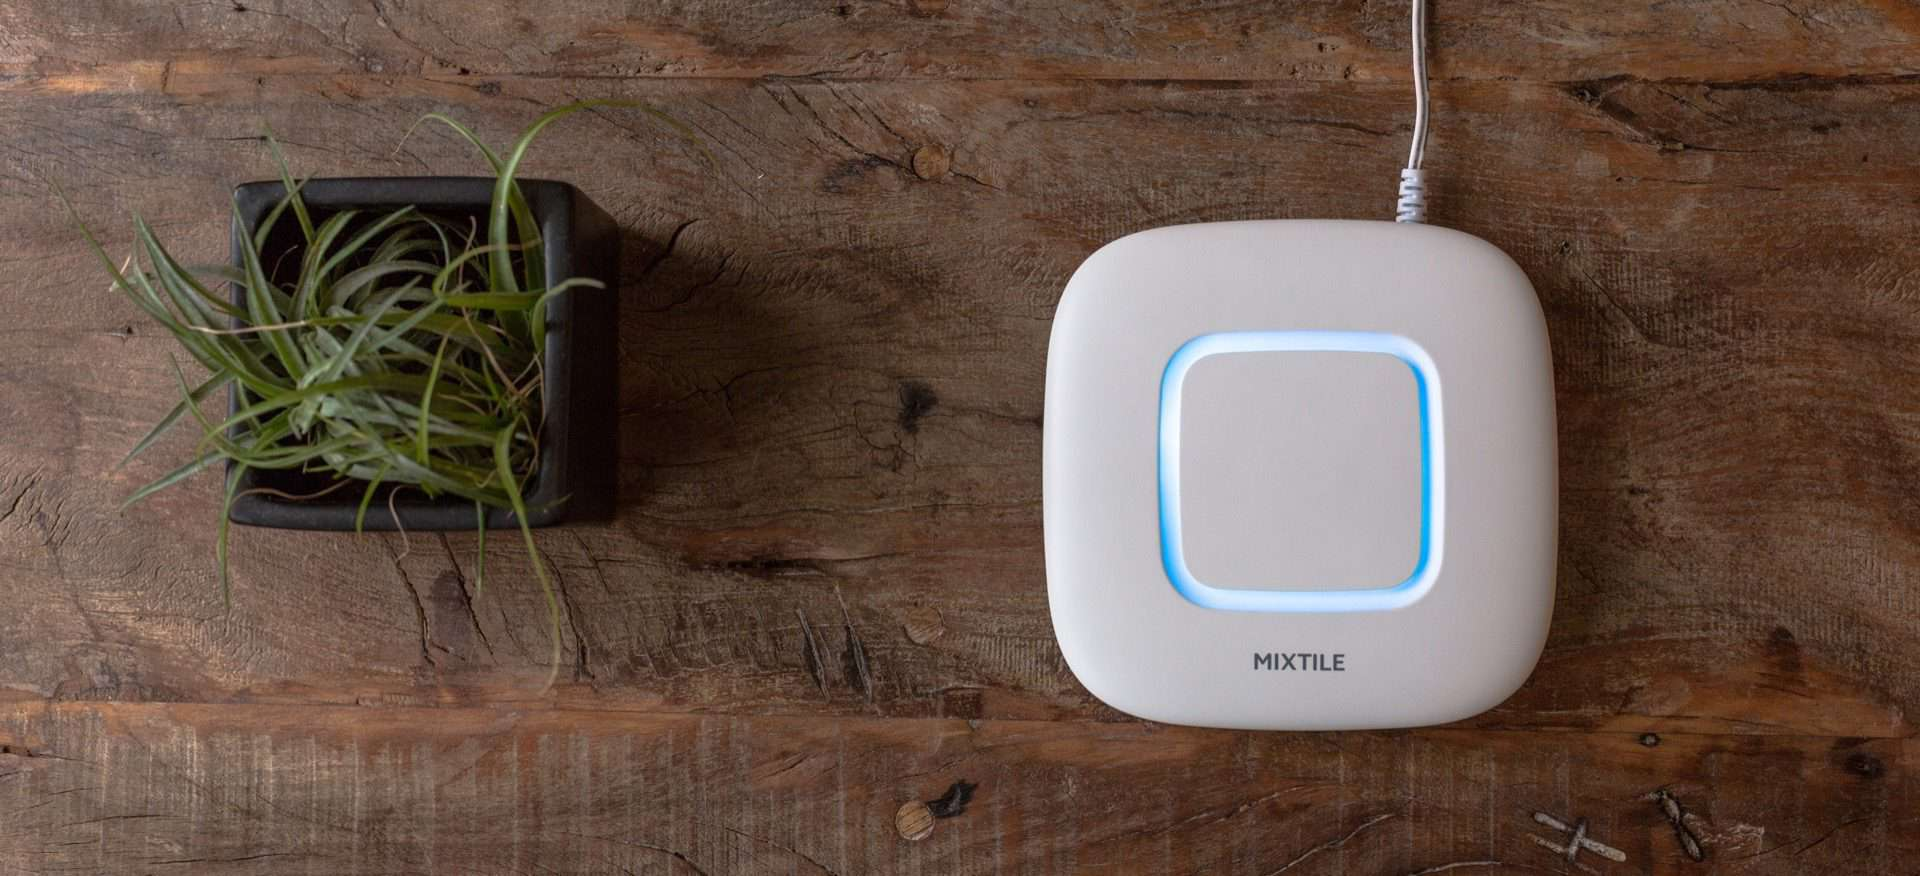 Meet Mixtile Hub - This is the Most Affordable Smart Home Controller I've Ever Seen! - 1